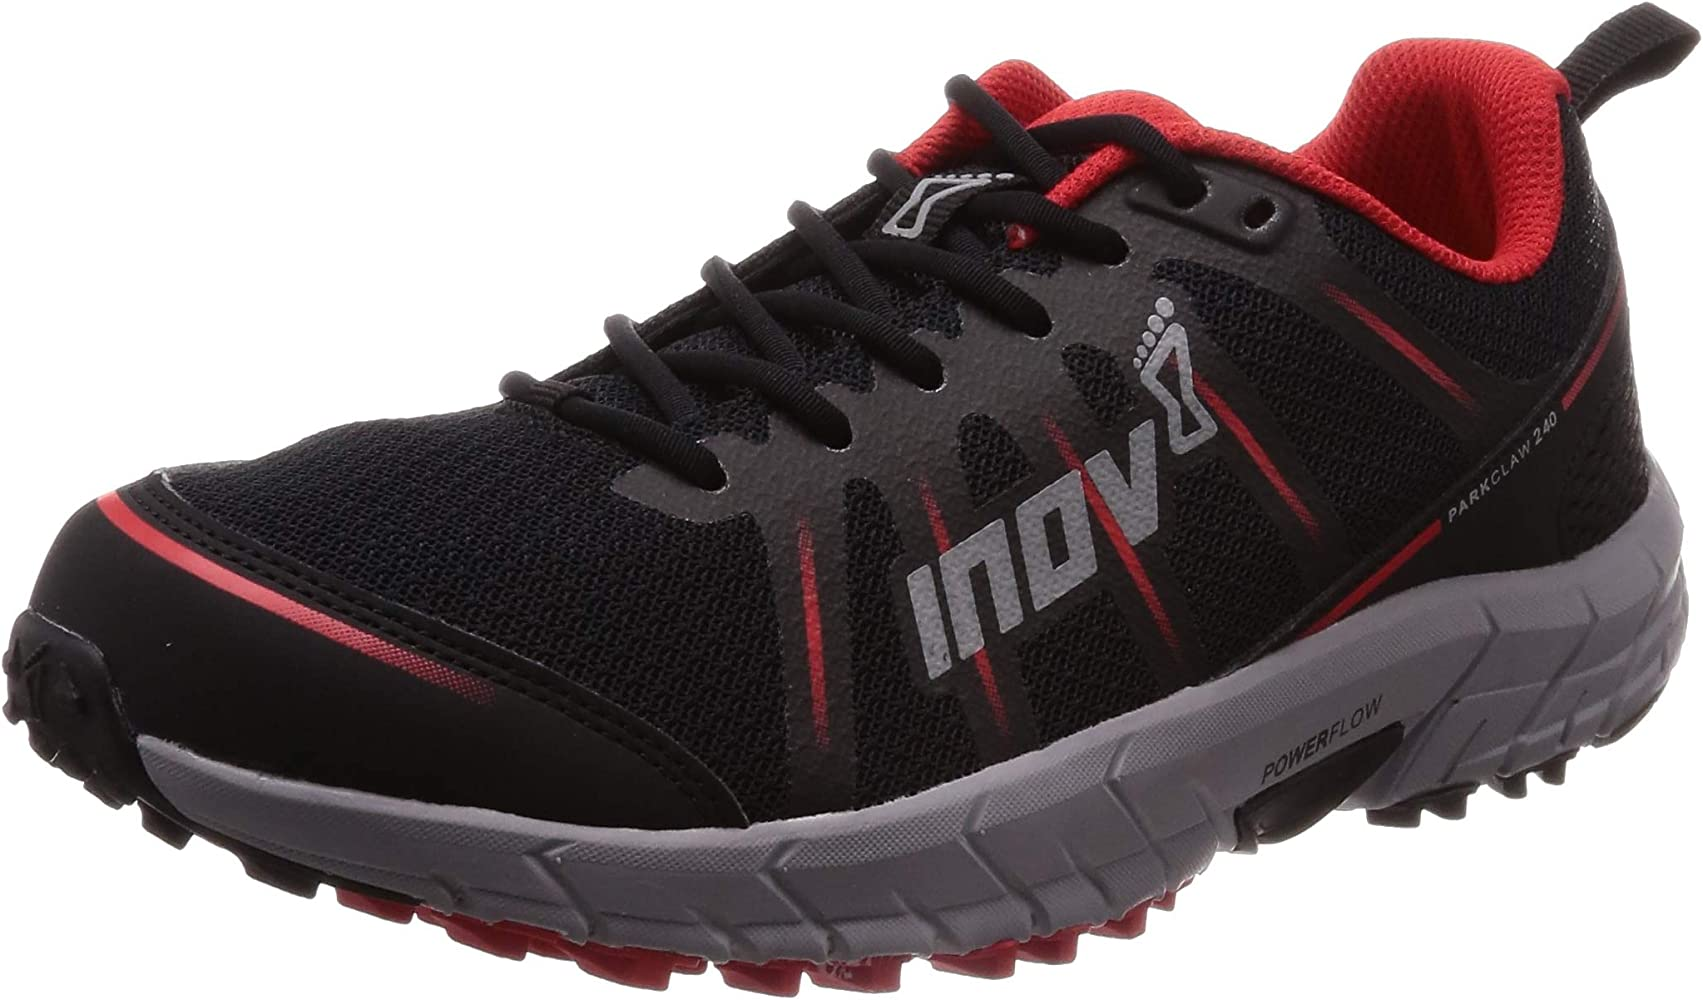 Inov8 Mens Parkclaw 240 Trail Running Shoes Trainers Sneakers Black Red Sports